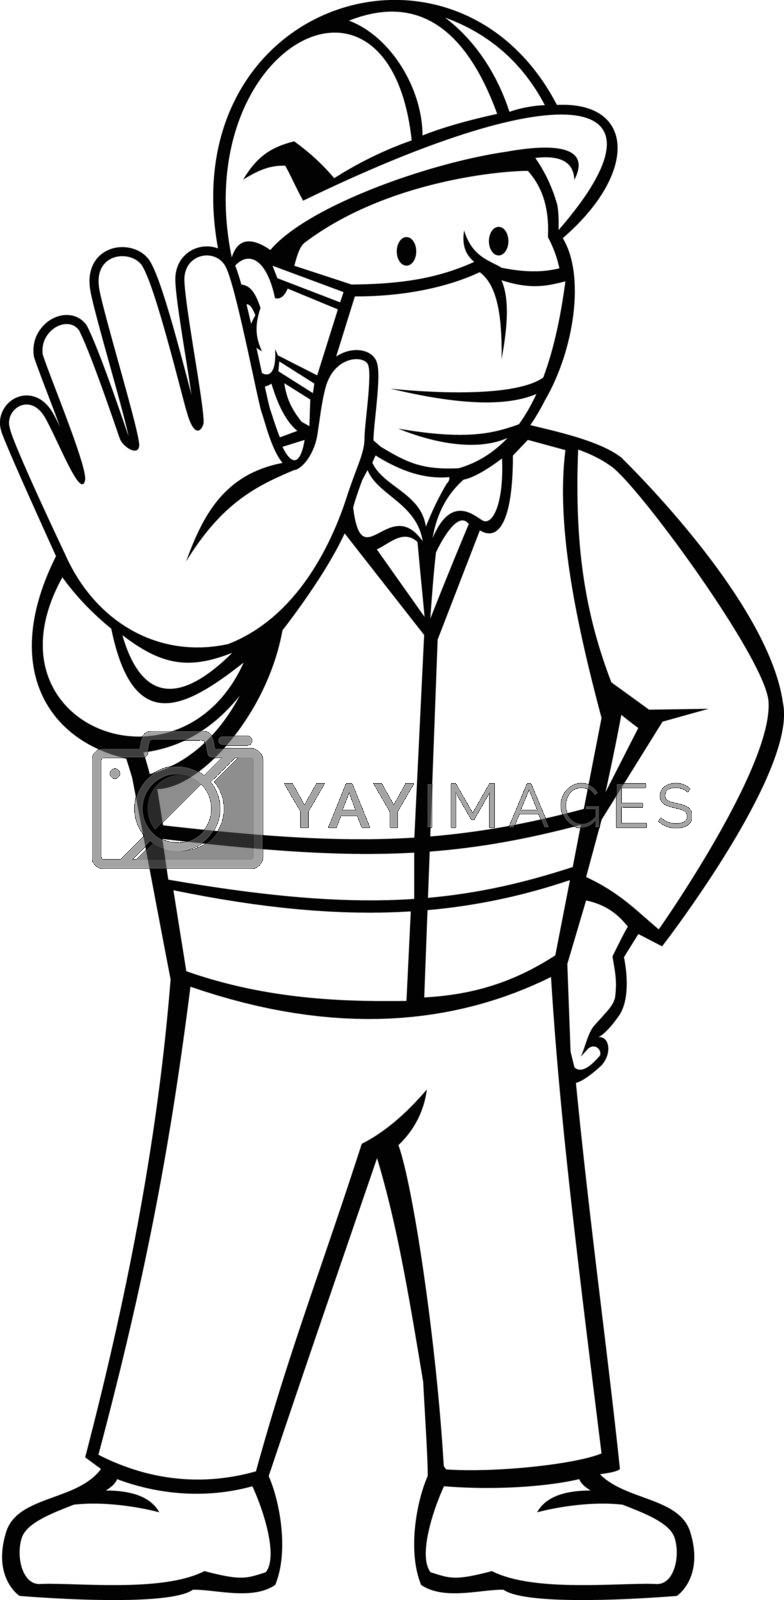 Black and white cartoon illustration of a construction worker wearing face mask showing stop hand signal with hand on hips viewed from front in retro style on isolated background.